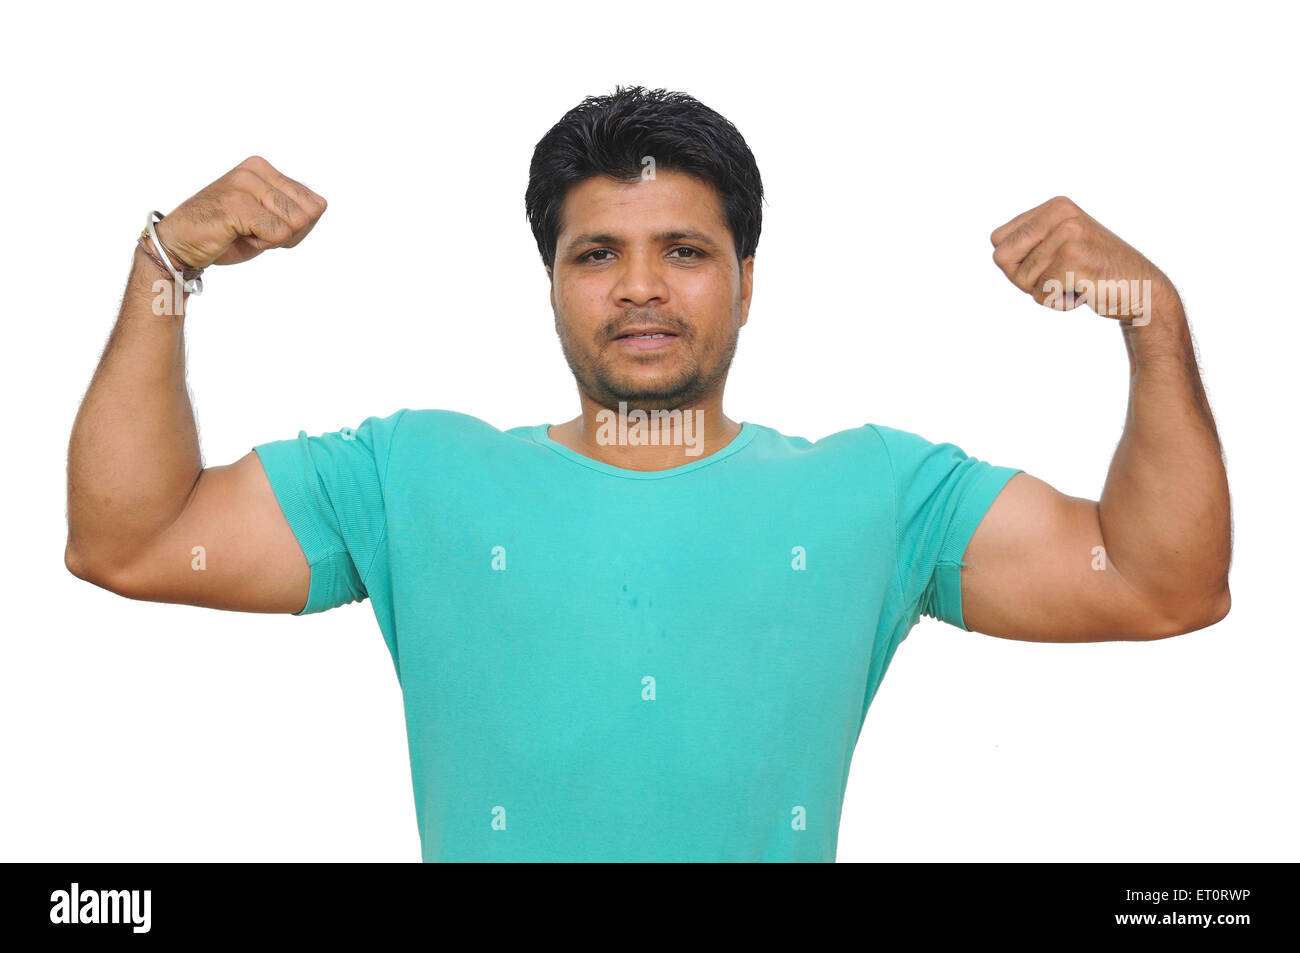 Man showing biceps on white background MR#786 - Stock Image